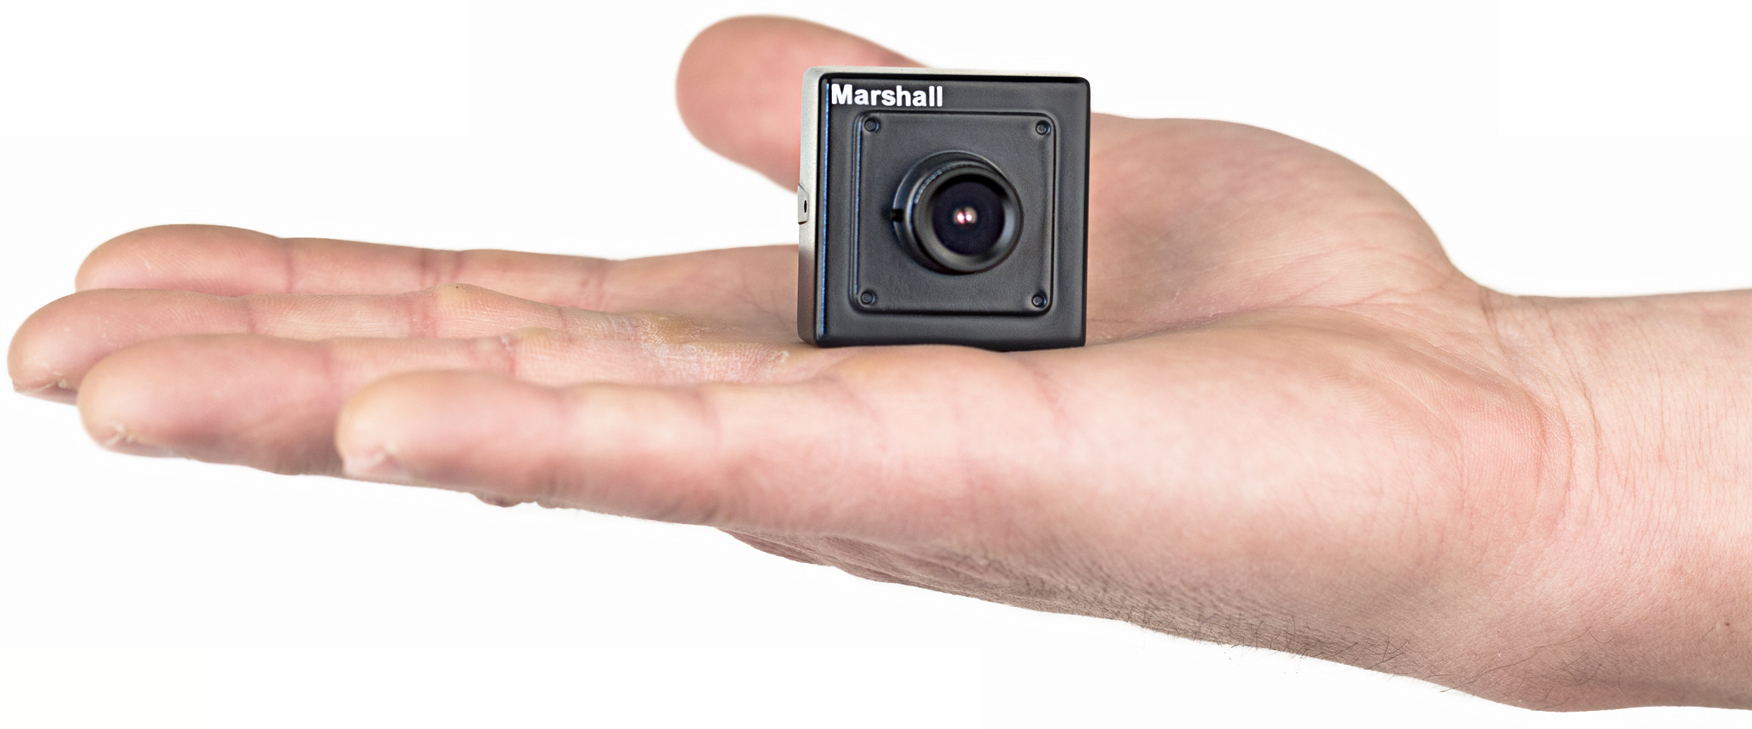 Marshall launch $499 HD-SDI enabled micro-camera for broadcast - Newsshooter